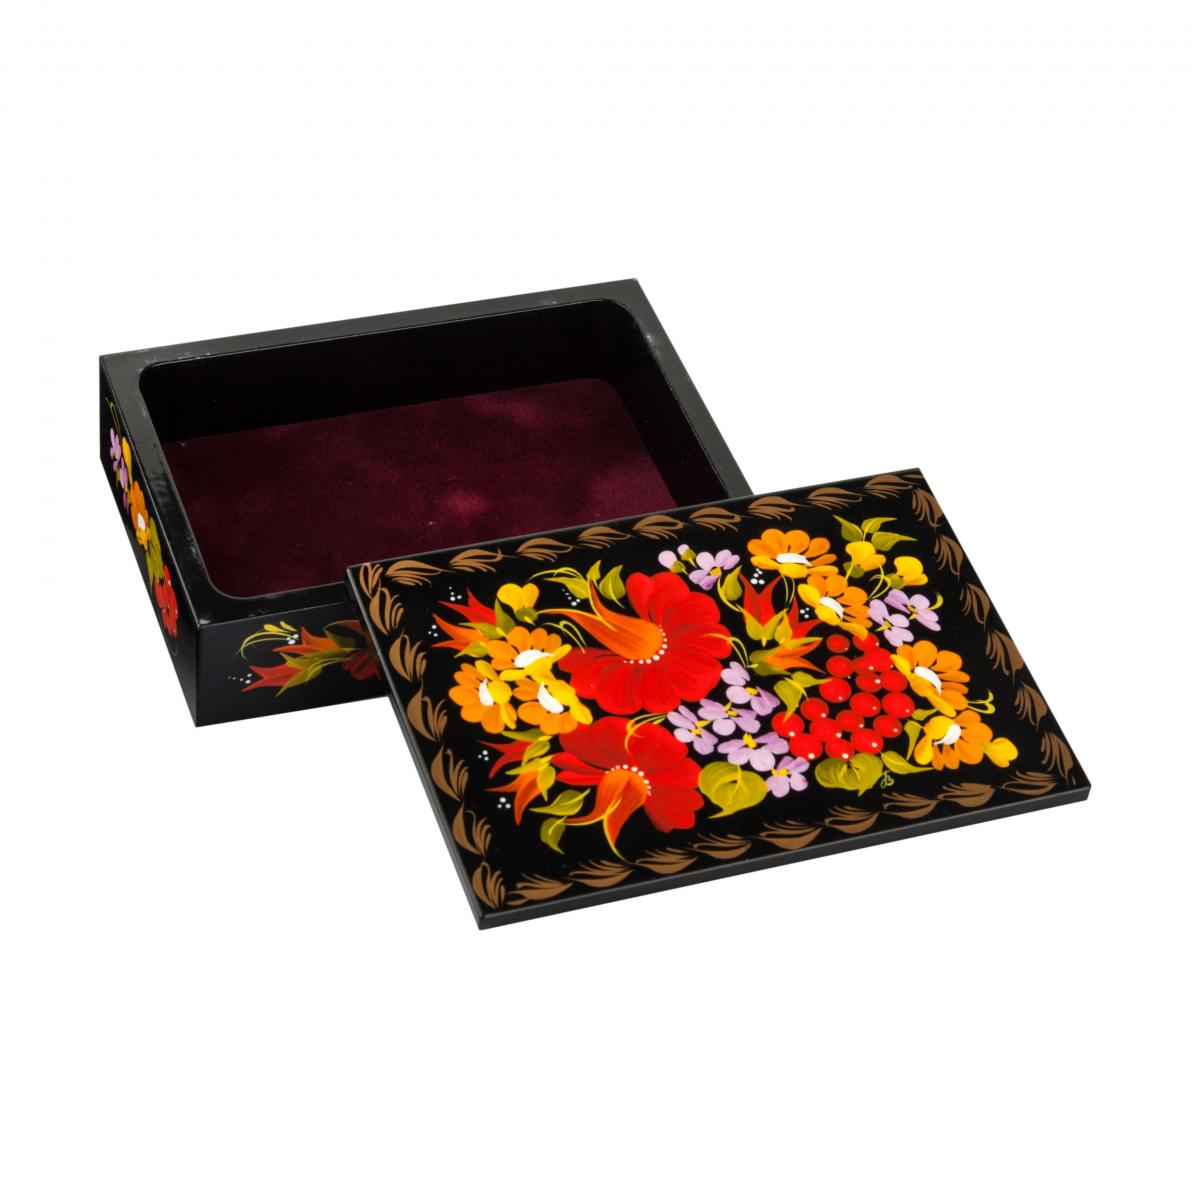 Casket with flower painting №9. Photo №1. | Narodnyi dim Ukraine